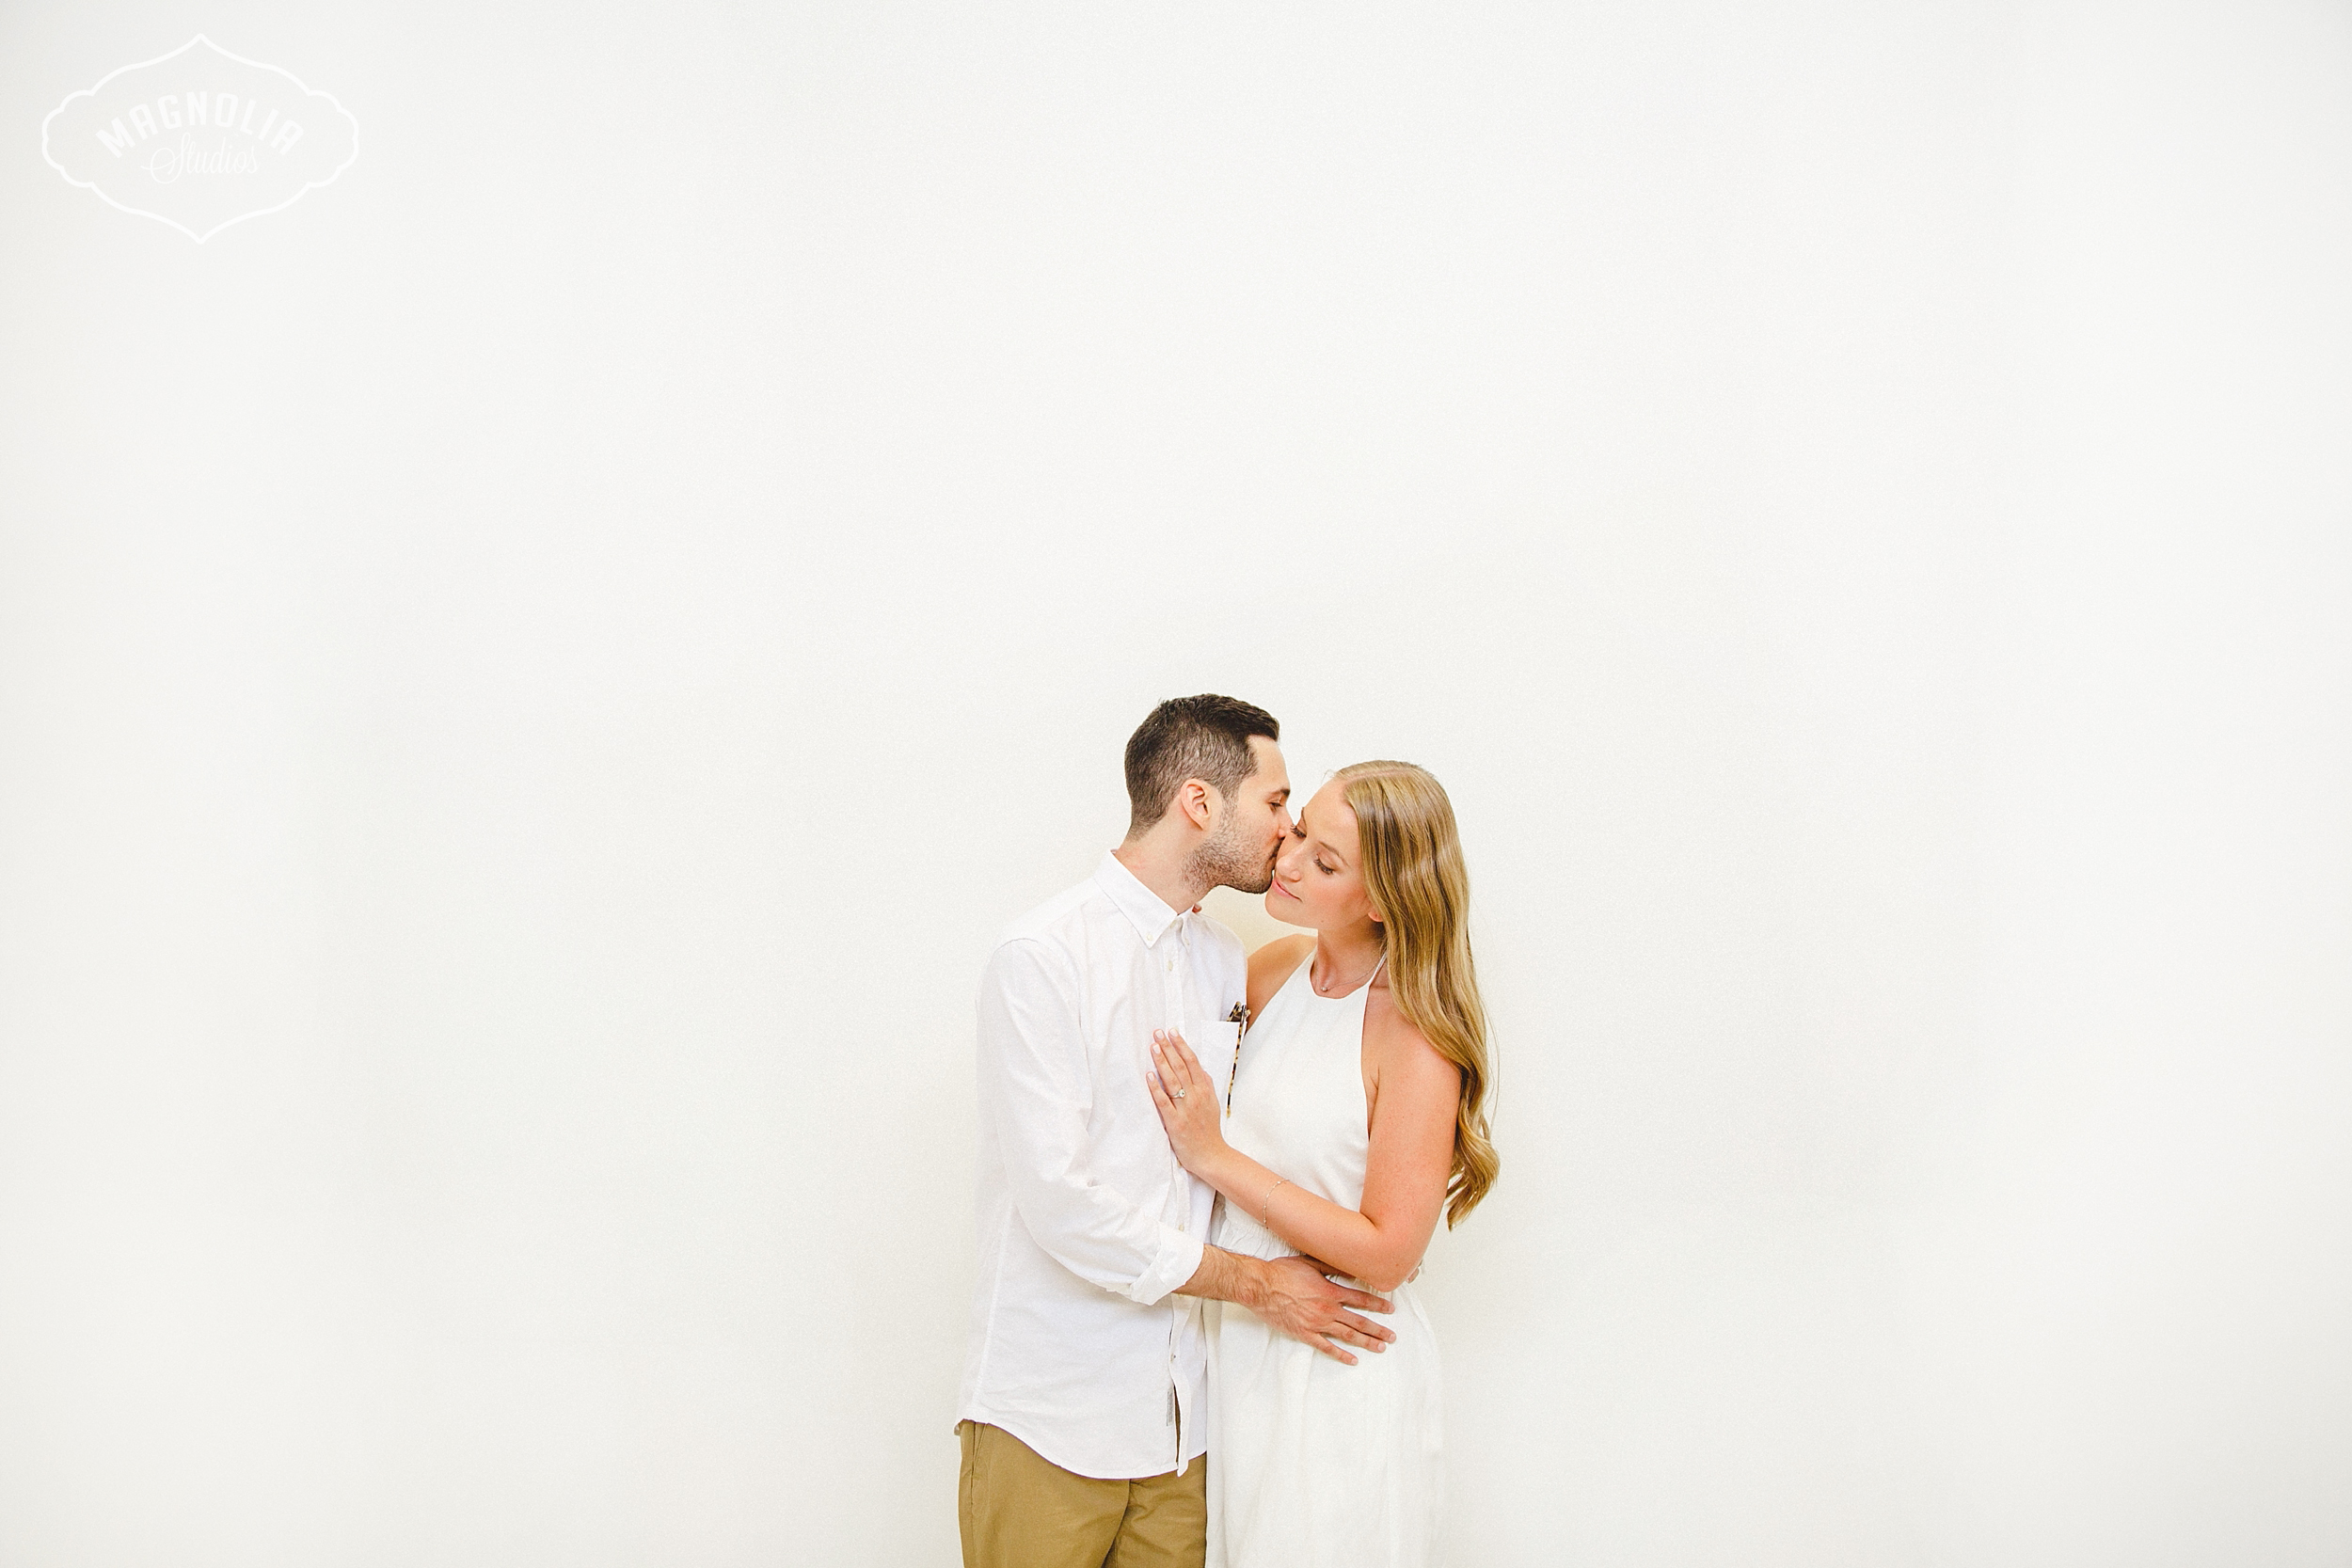 Western_University_Engagement_Shoot_Magnolia_Studios-3